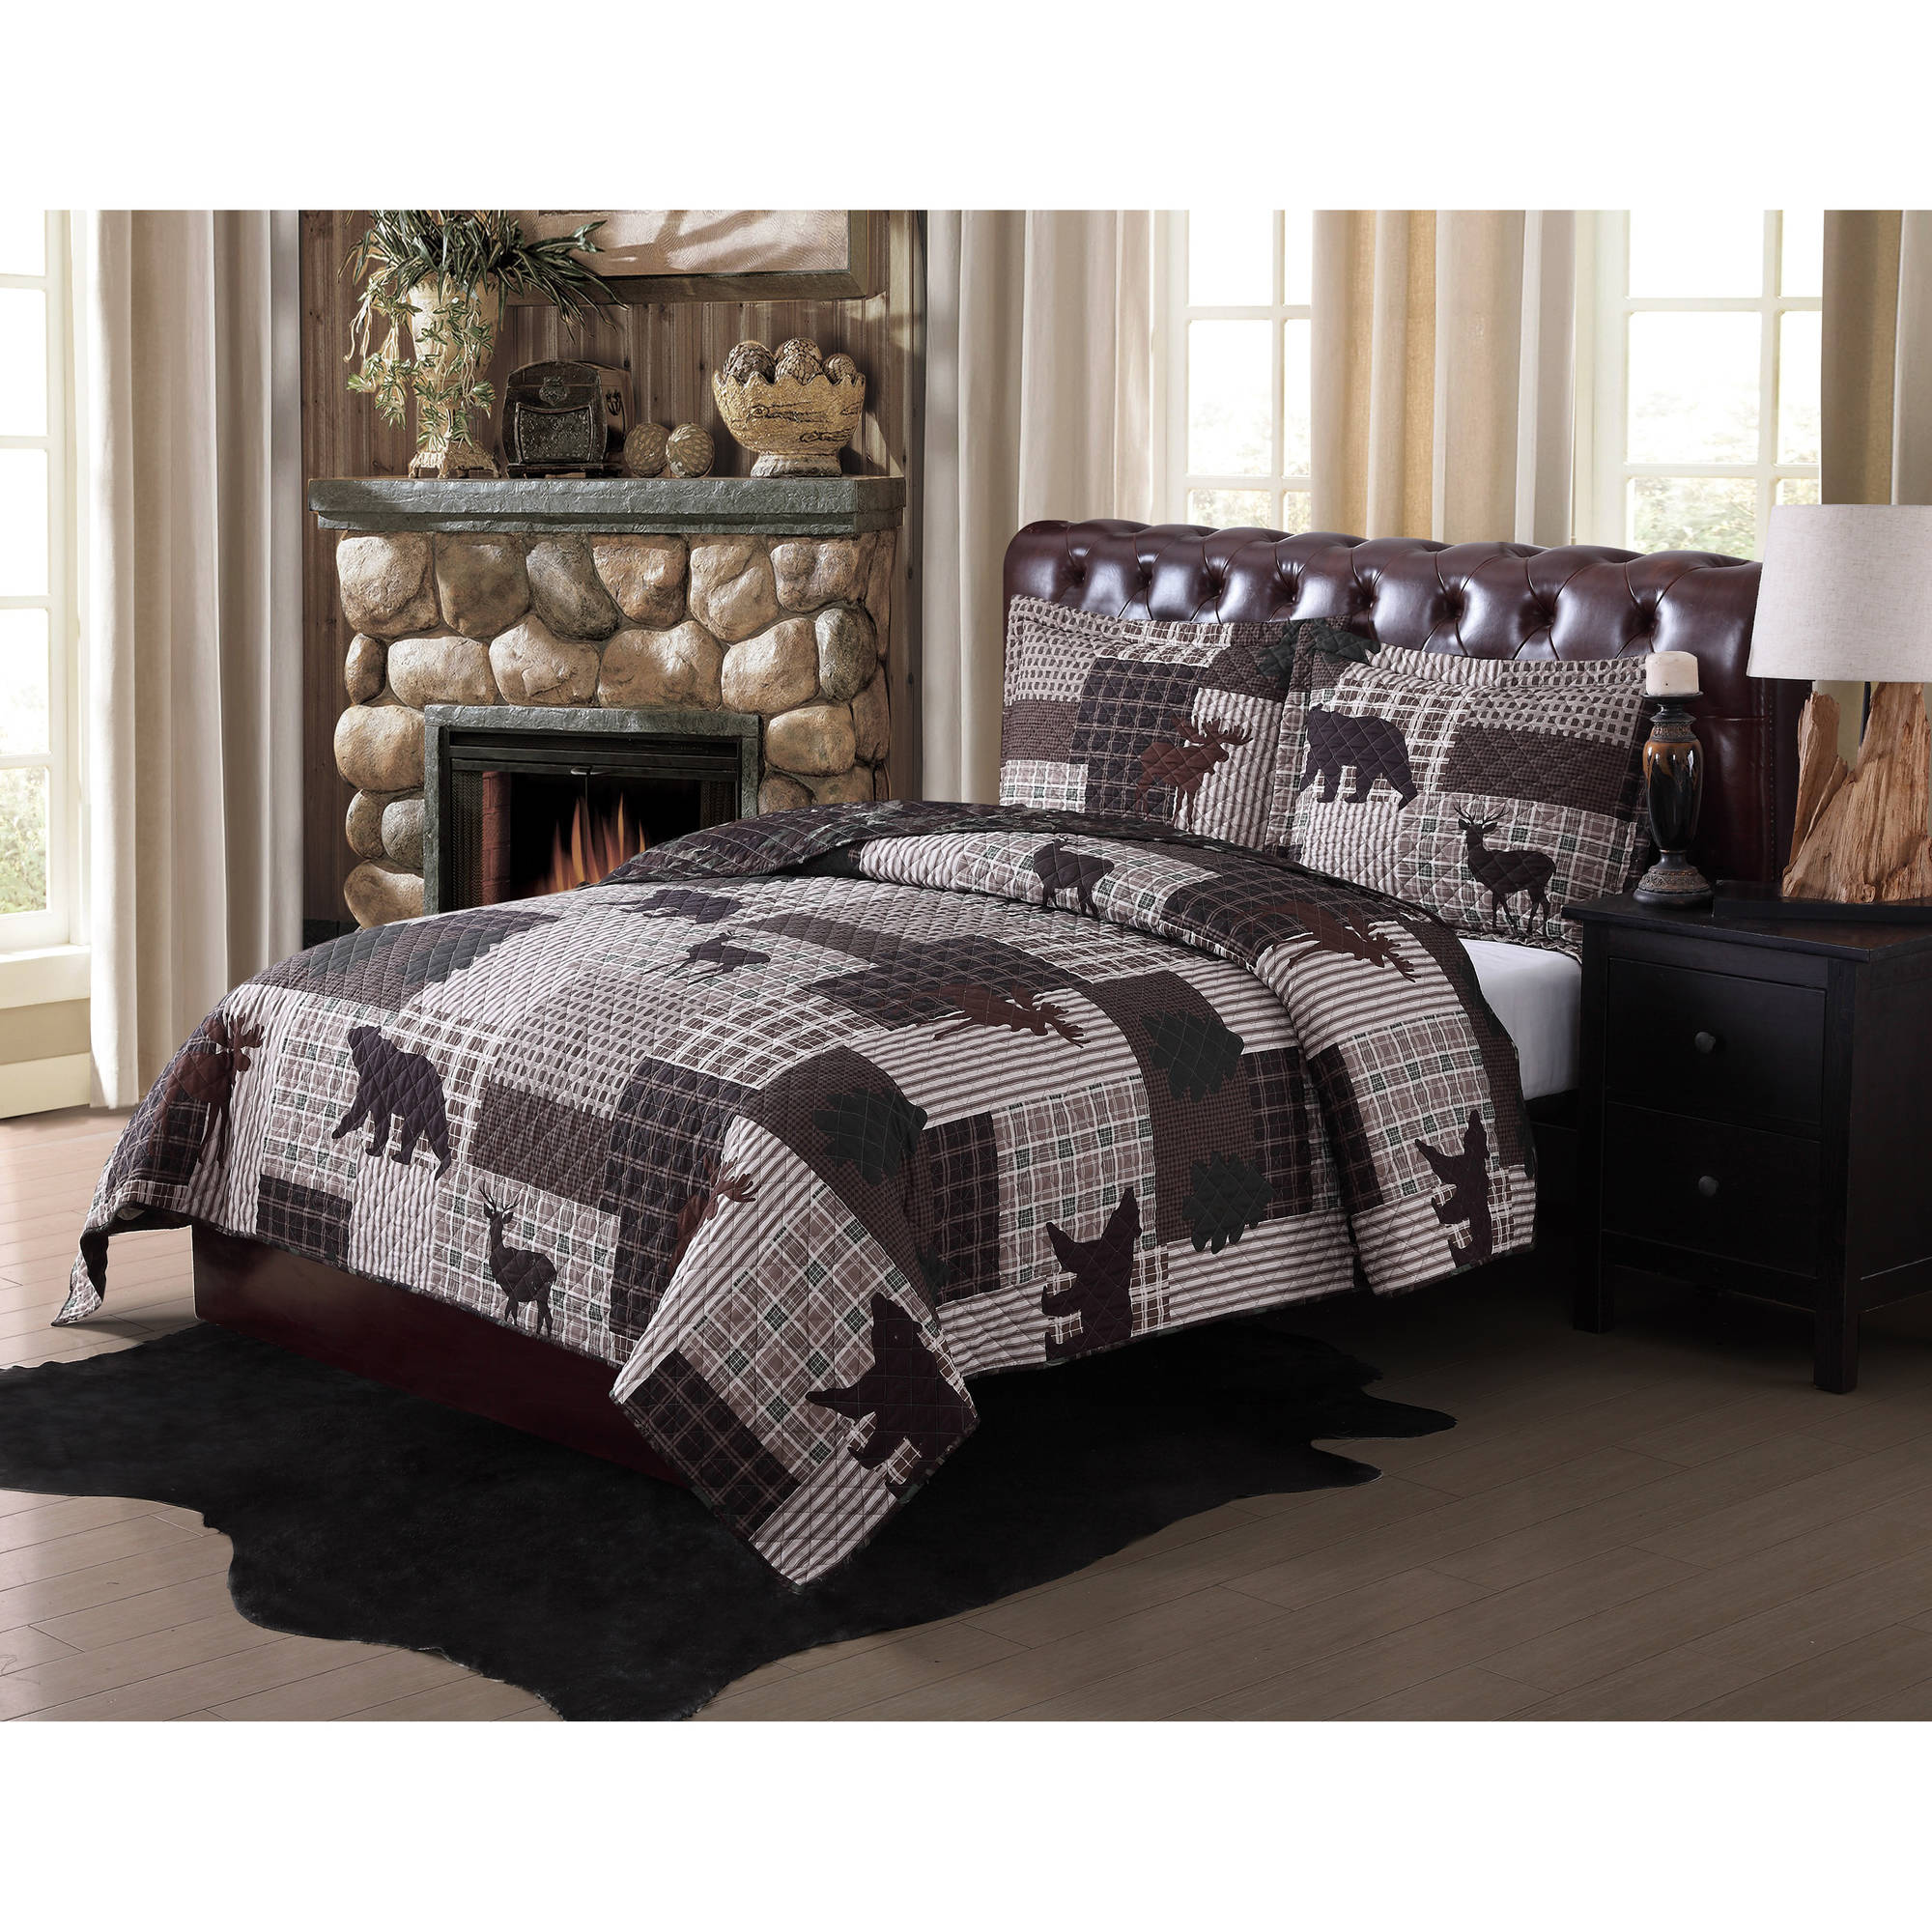 plaid beautiful flannel queen king beyond amazon duvet bath brilliant of ideas red sets new bed dorm bedding and cover astonishing set